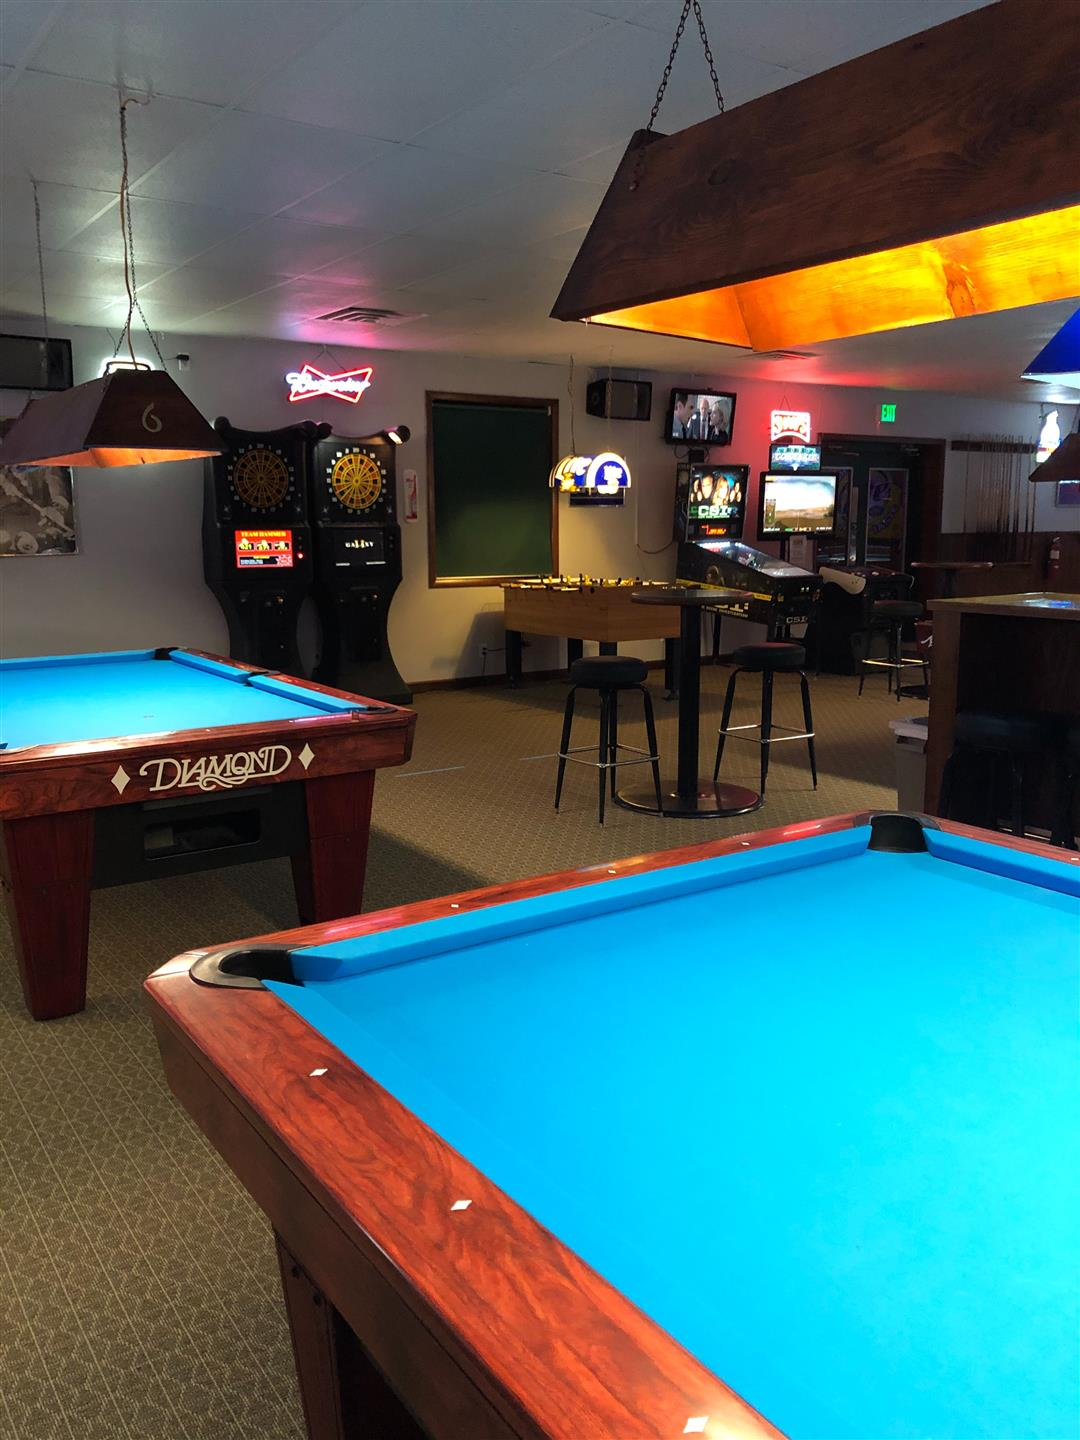 interior view of business with pool tables and lights up above